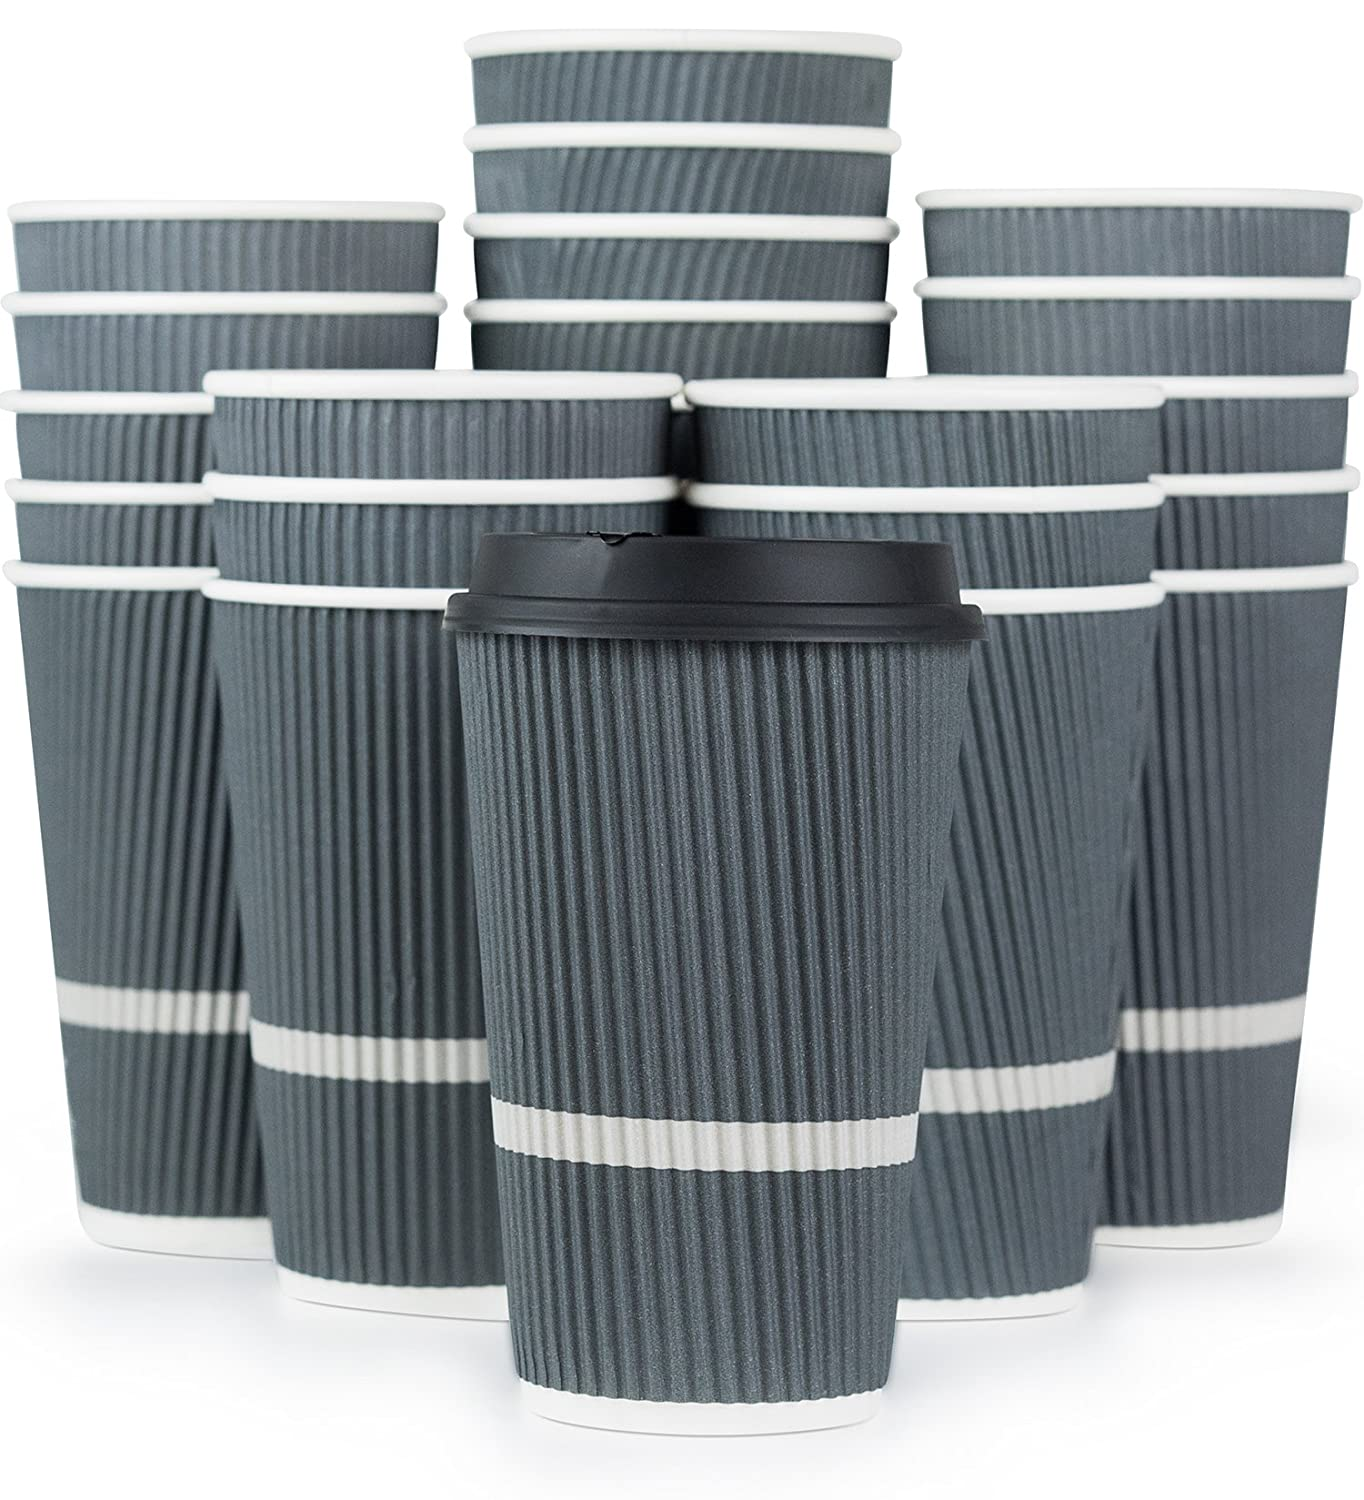 Glowcoast Disposable Coffee Cups With Lids - 16 oz To Go Coffee Cup (80 Pack). Large Travel Cups Hold Shape With Hot and Cold Drinks, No Leaks! Insulated Ripple Cups Protect Hands, No Sleeves needed!